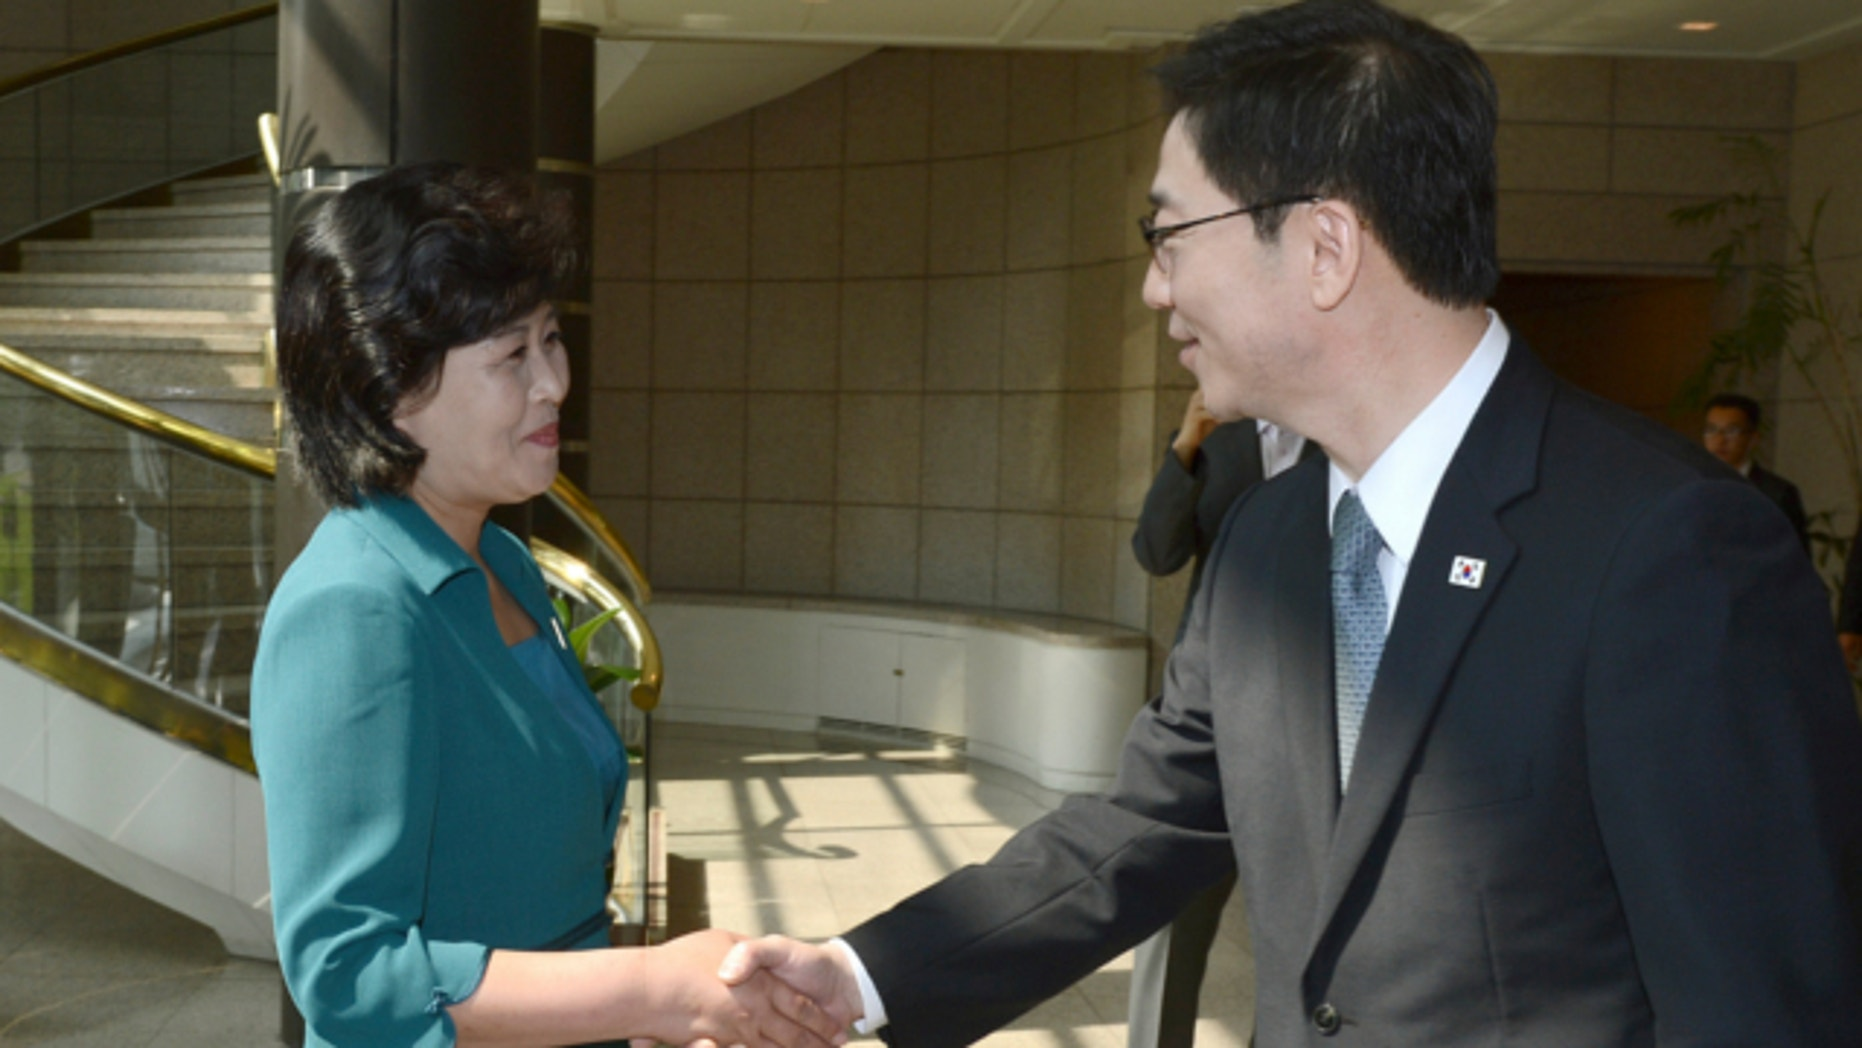 June 9, 2013: In this photo released by the South Korean Unification Ministry, South Korea's Unification Policy Officer Chun Hae-sung, right, shakes hands with the head of North Korea's delegation Kim Song Hye, left, upon Kim's arrival to their meeting at the southern side of Panmunjom, which has separated the two Koreas since the Korean War, in Paju, north of Seoul, South Korea.